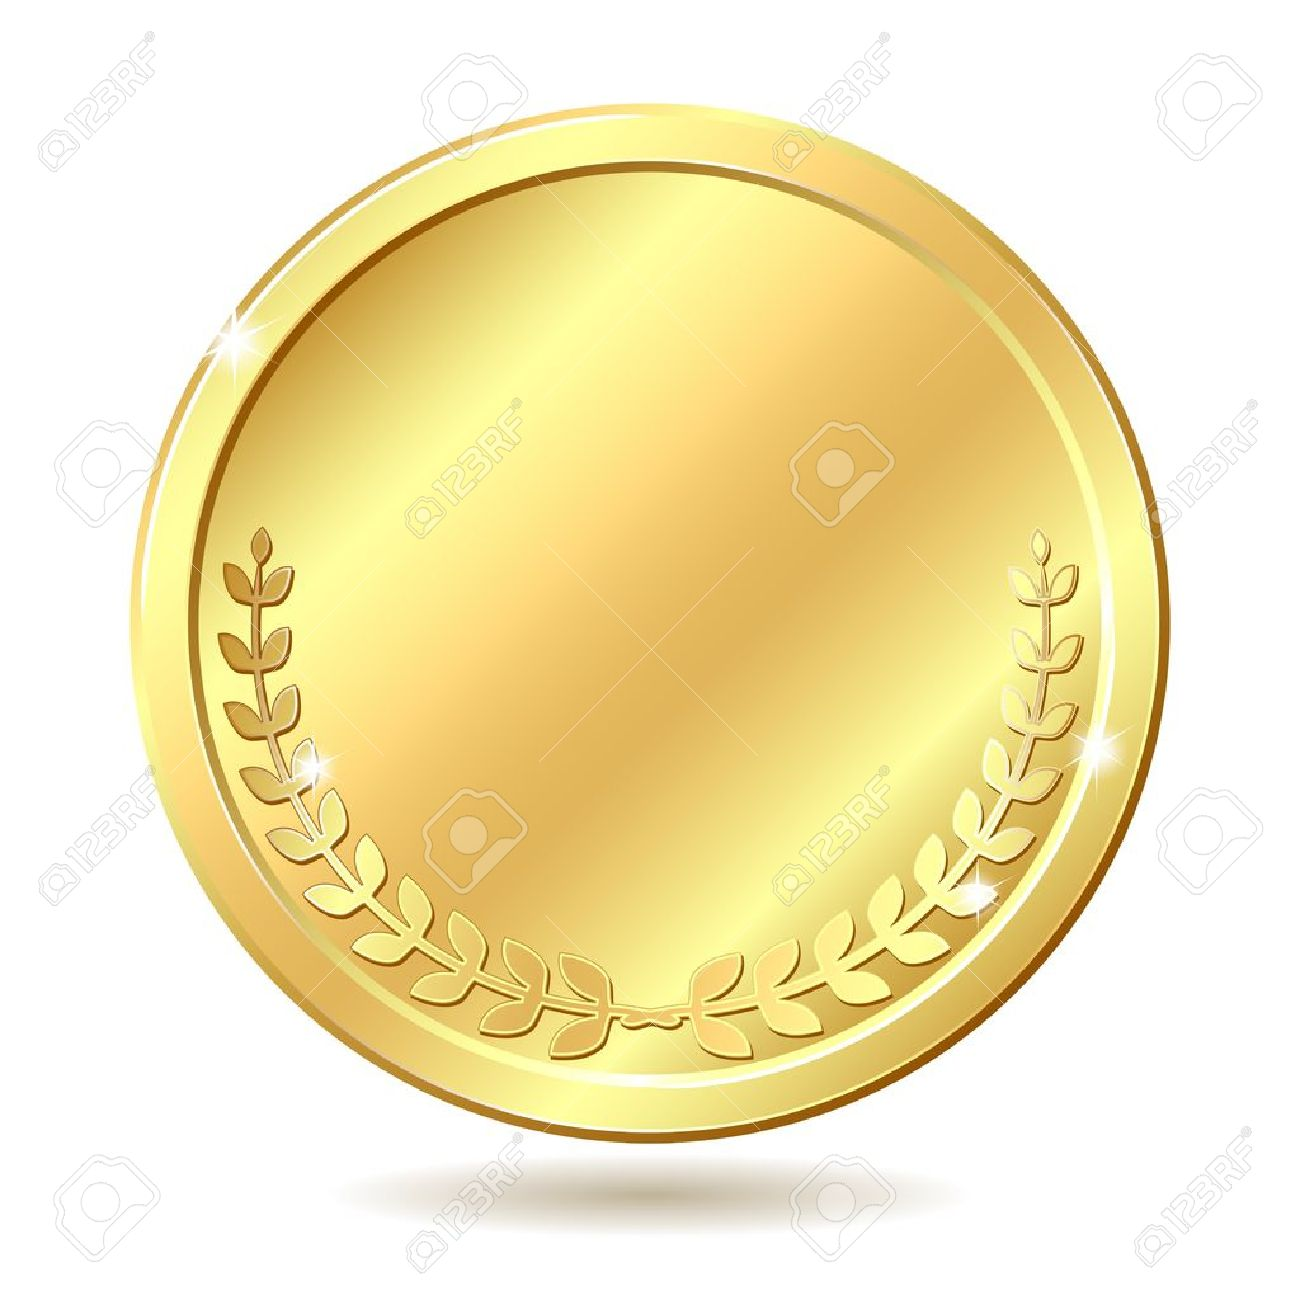 Gold coin Vector illustration isolated on white background - 14388954